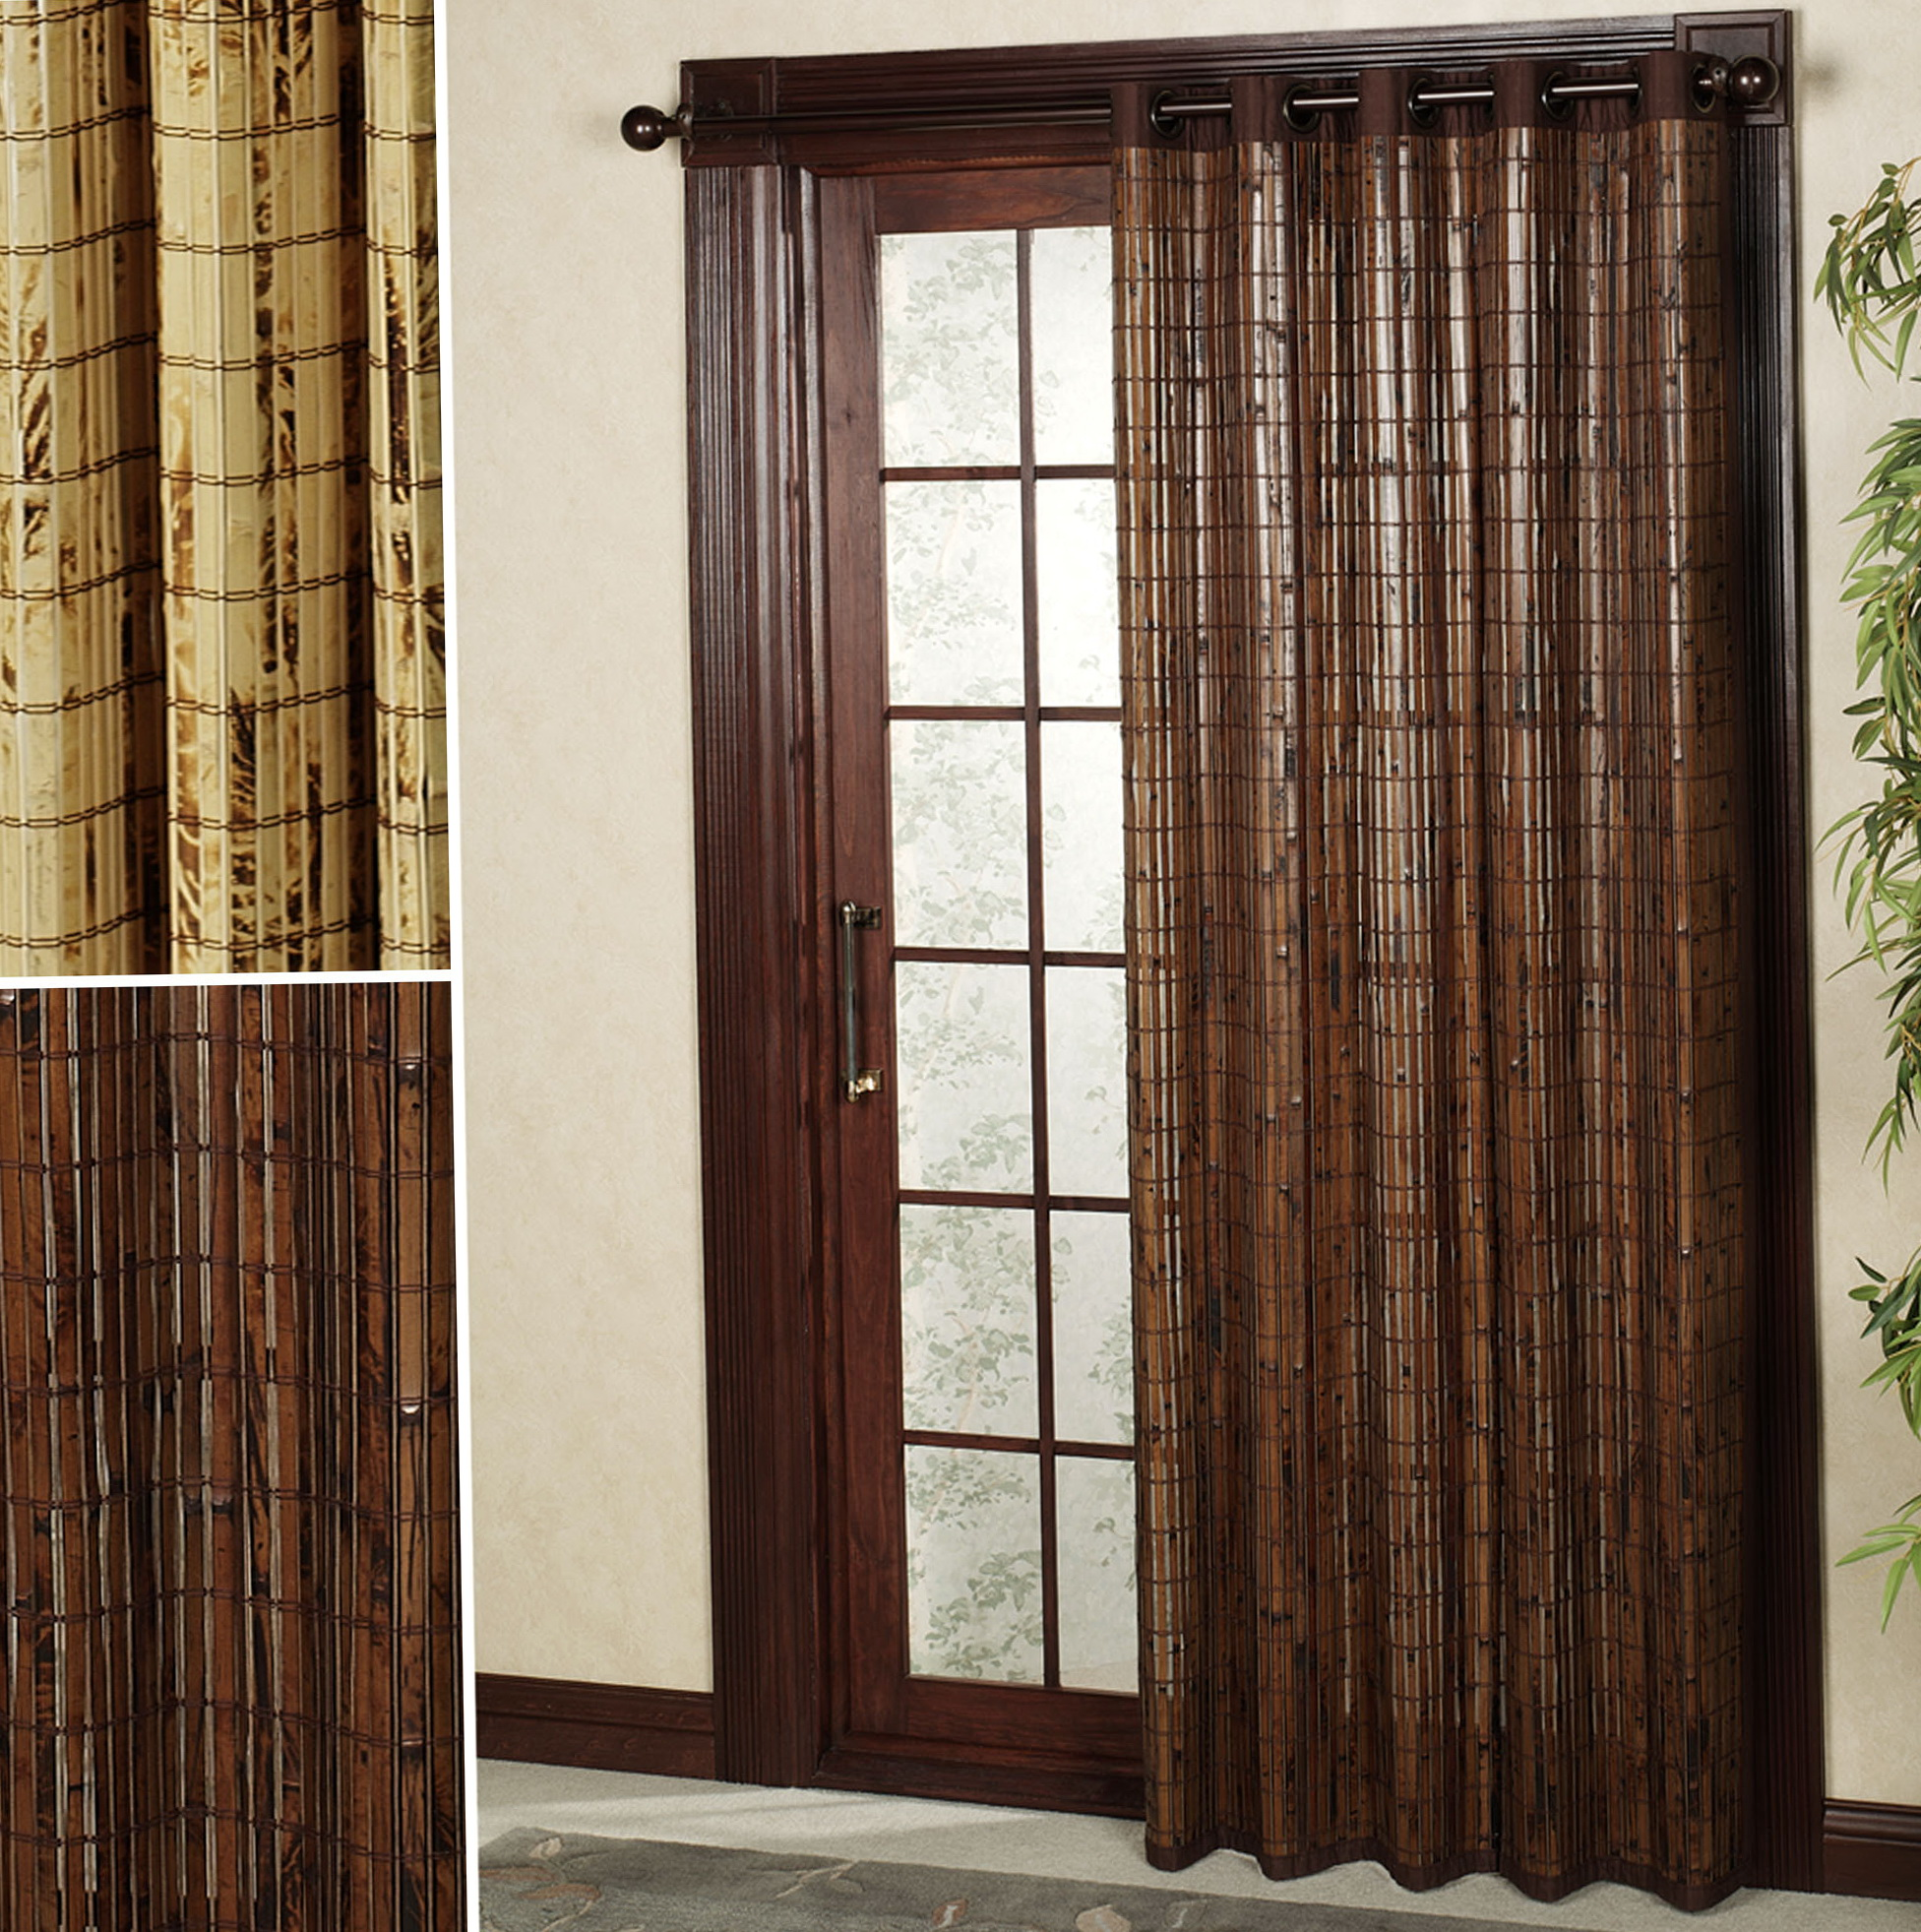 Patio door curtains ideas home design ideas for Balcony door ideas